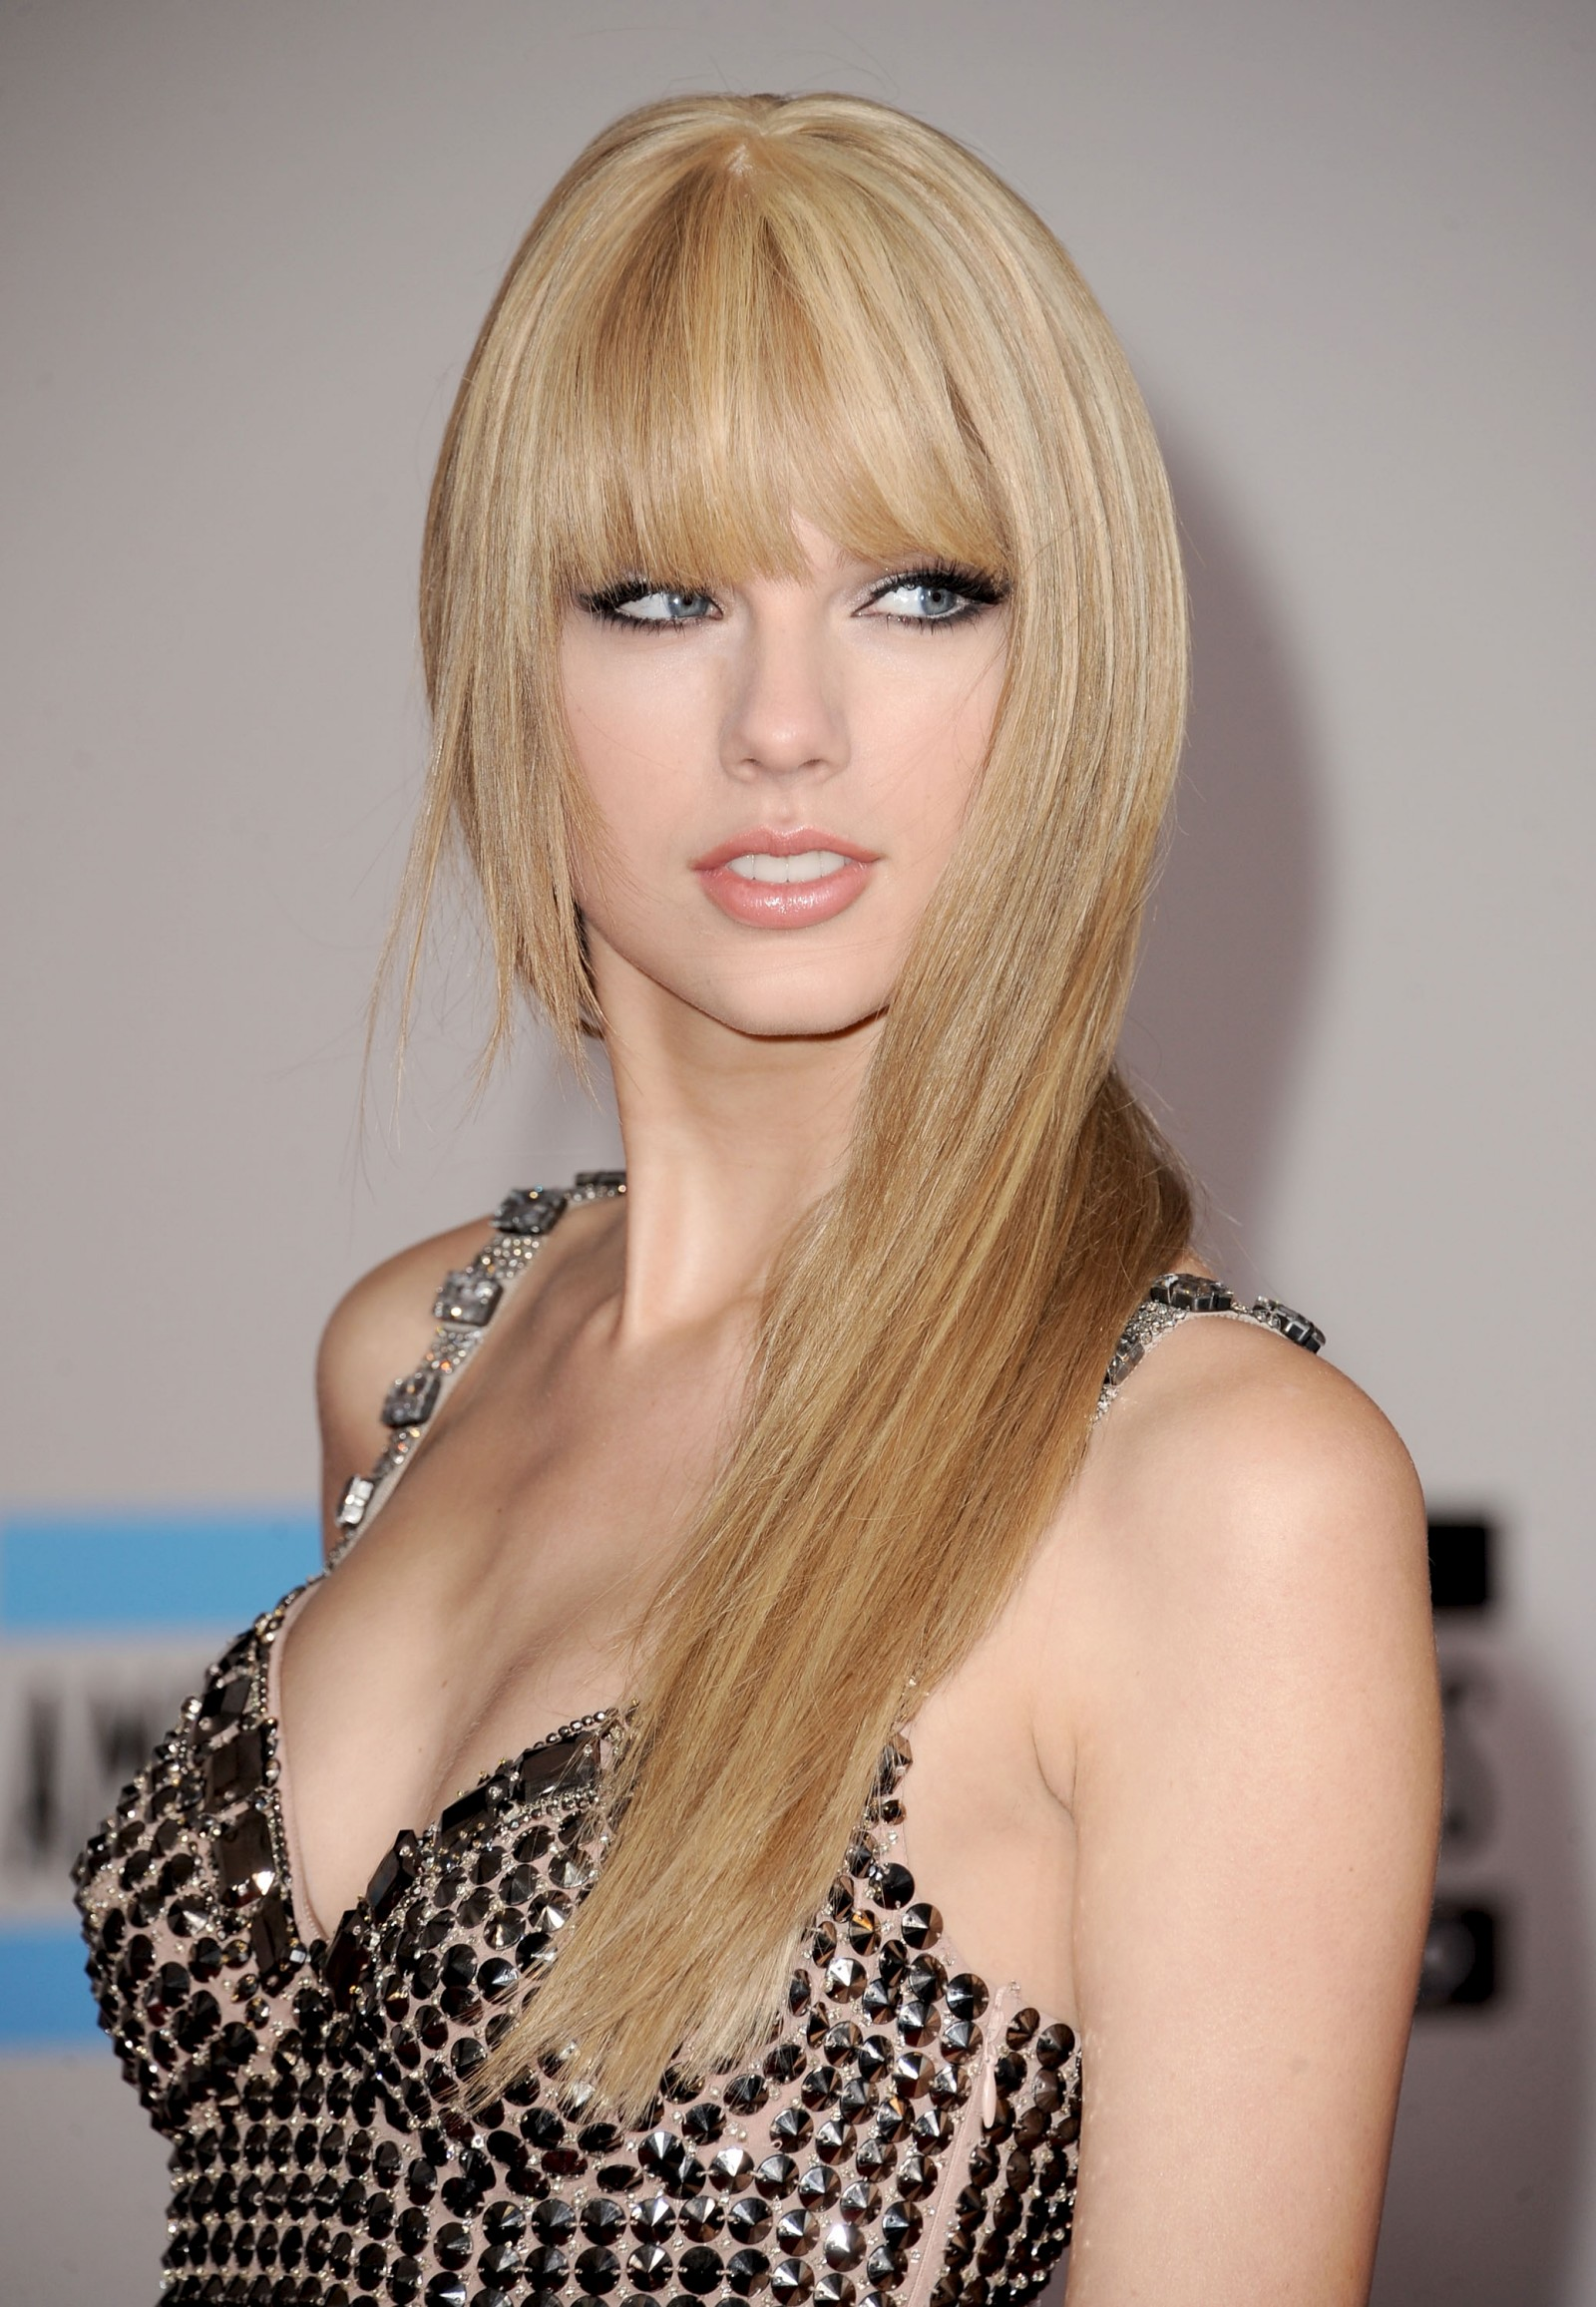 Taylor Swift – 2010 American Music Awards 6. Share this: Facebook